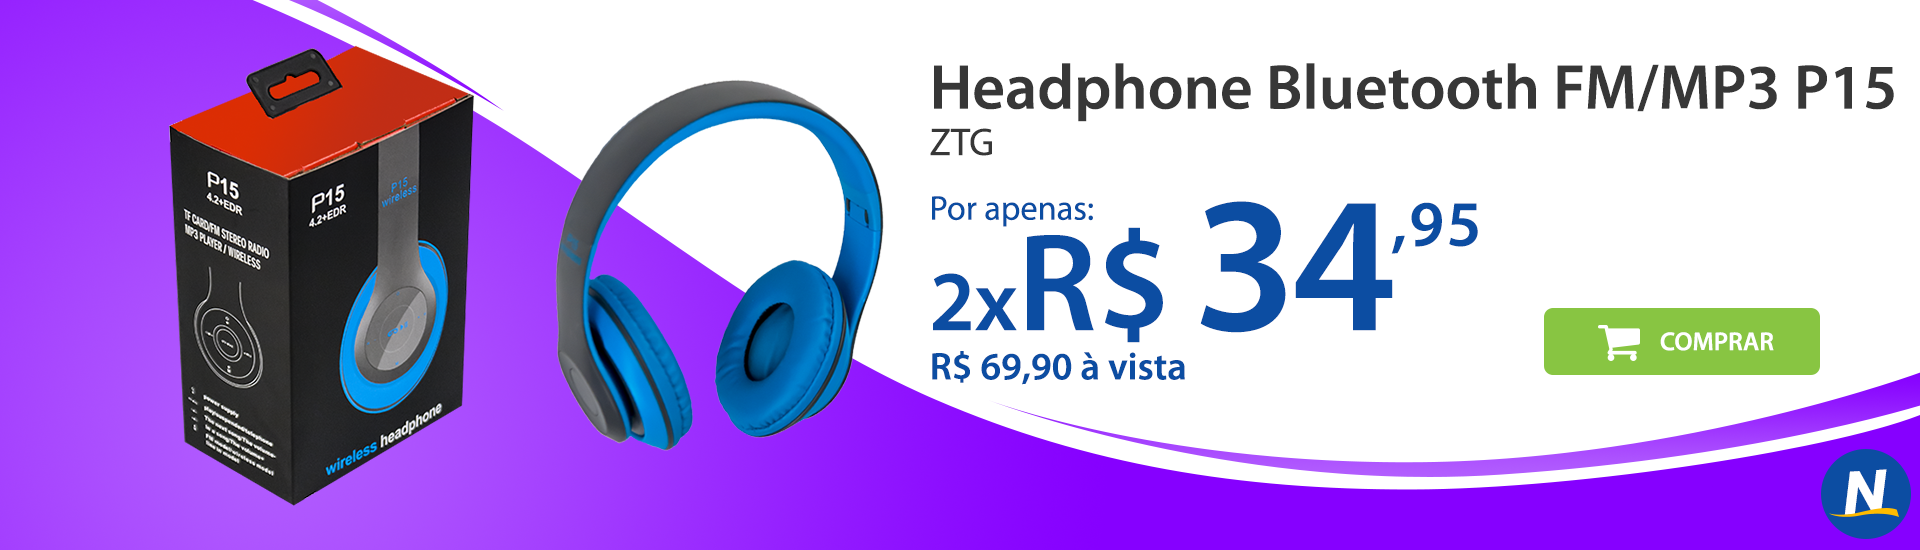 banner headphone bt